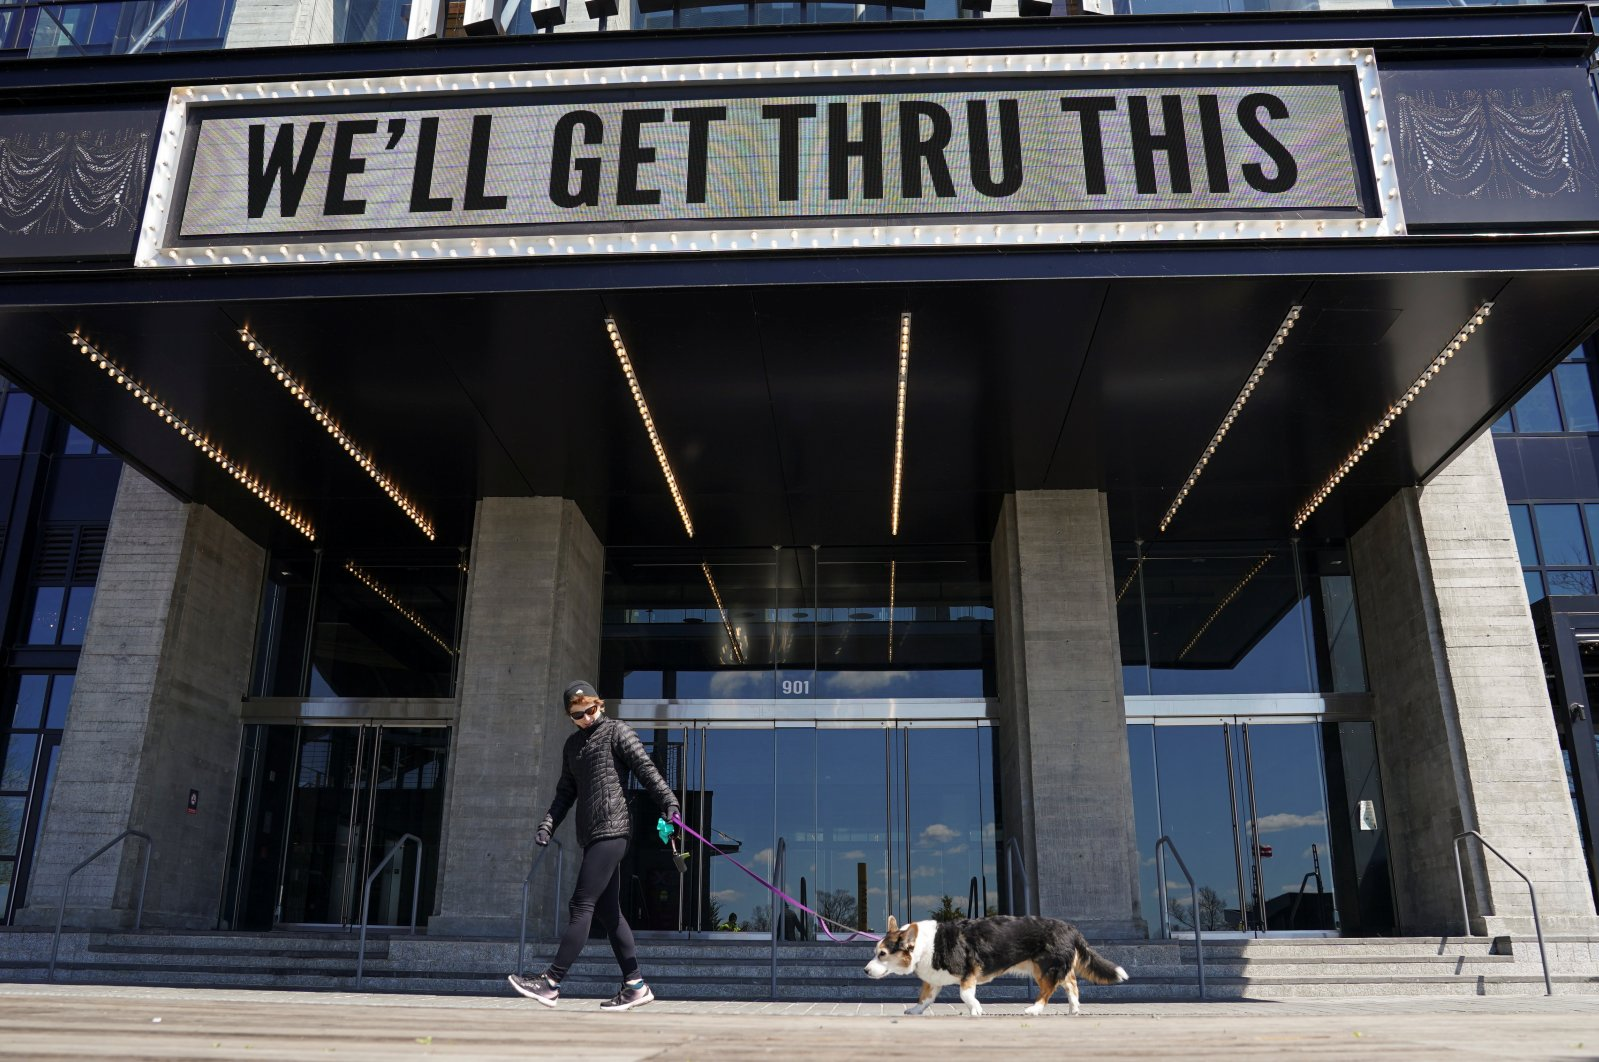 """A woman walks her dog under the marquee at The Anthem music venue reading """"We'll Get Thru This"""" referring to the battle against the coronavirus disease (COVID-19) pandemic, in Washington, U.S., Thursday, April 2, 2020. REUTERS"""